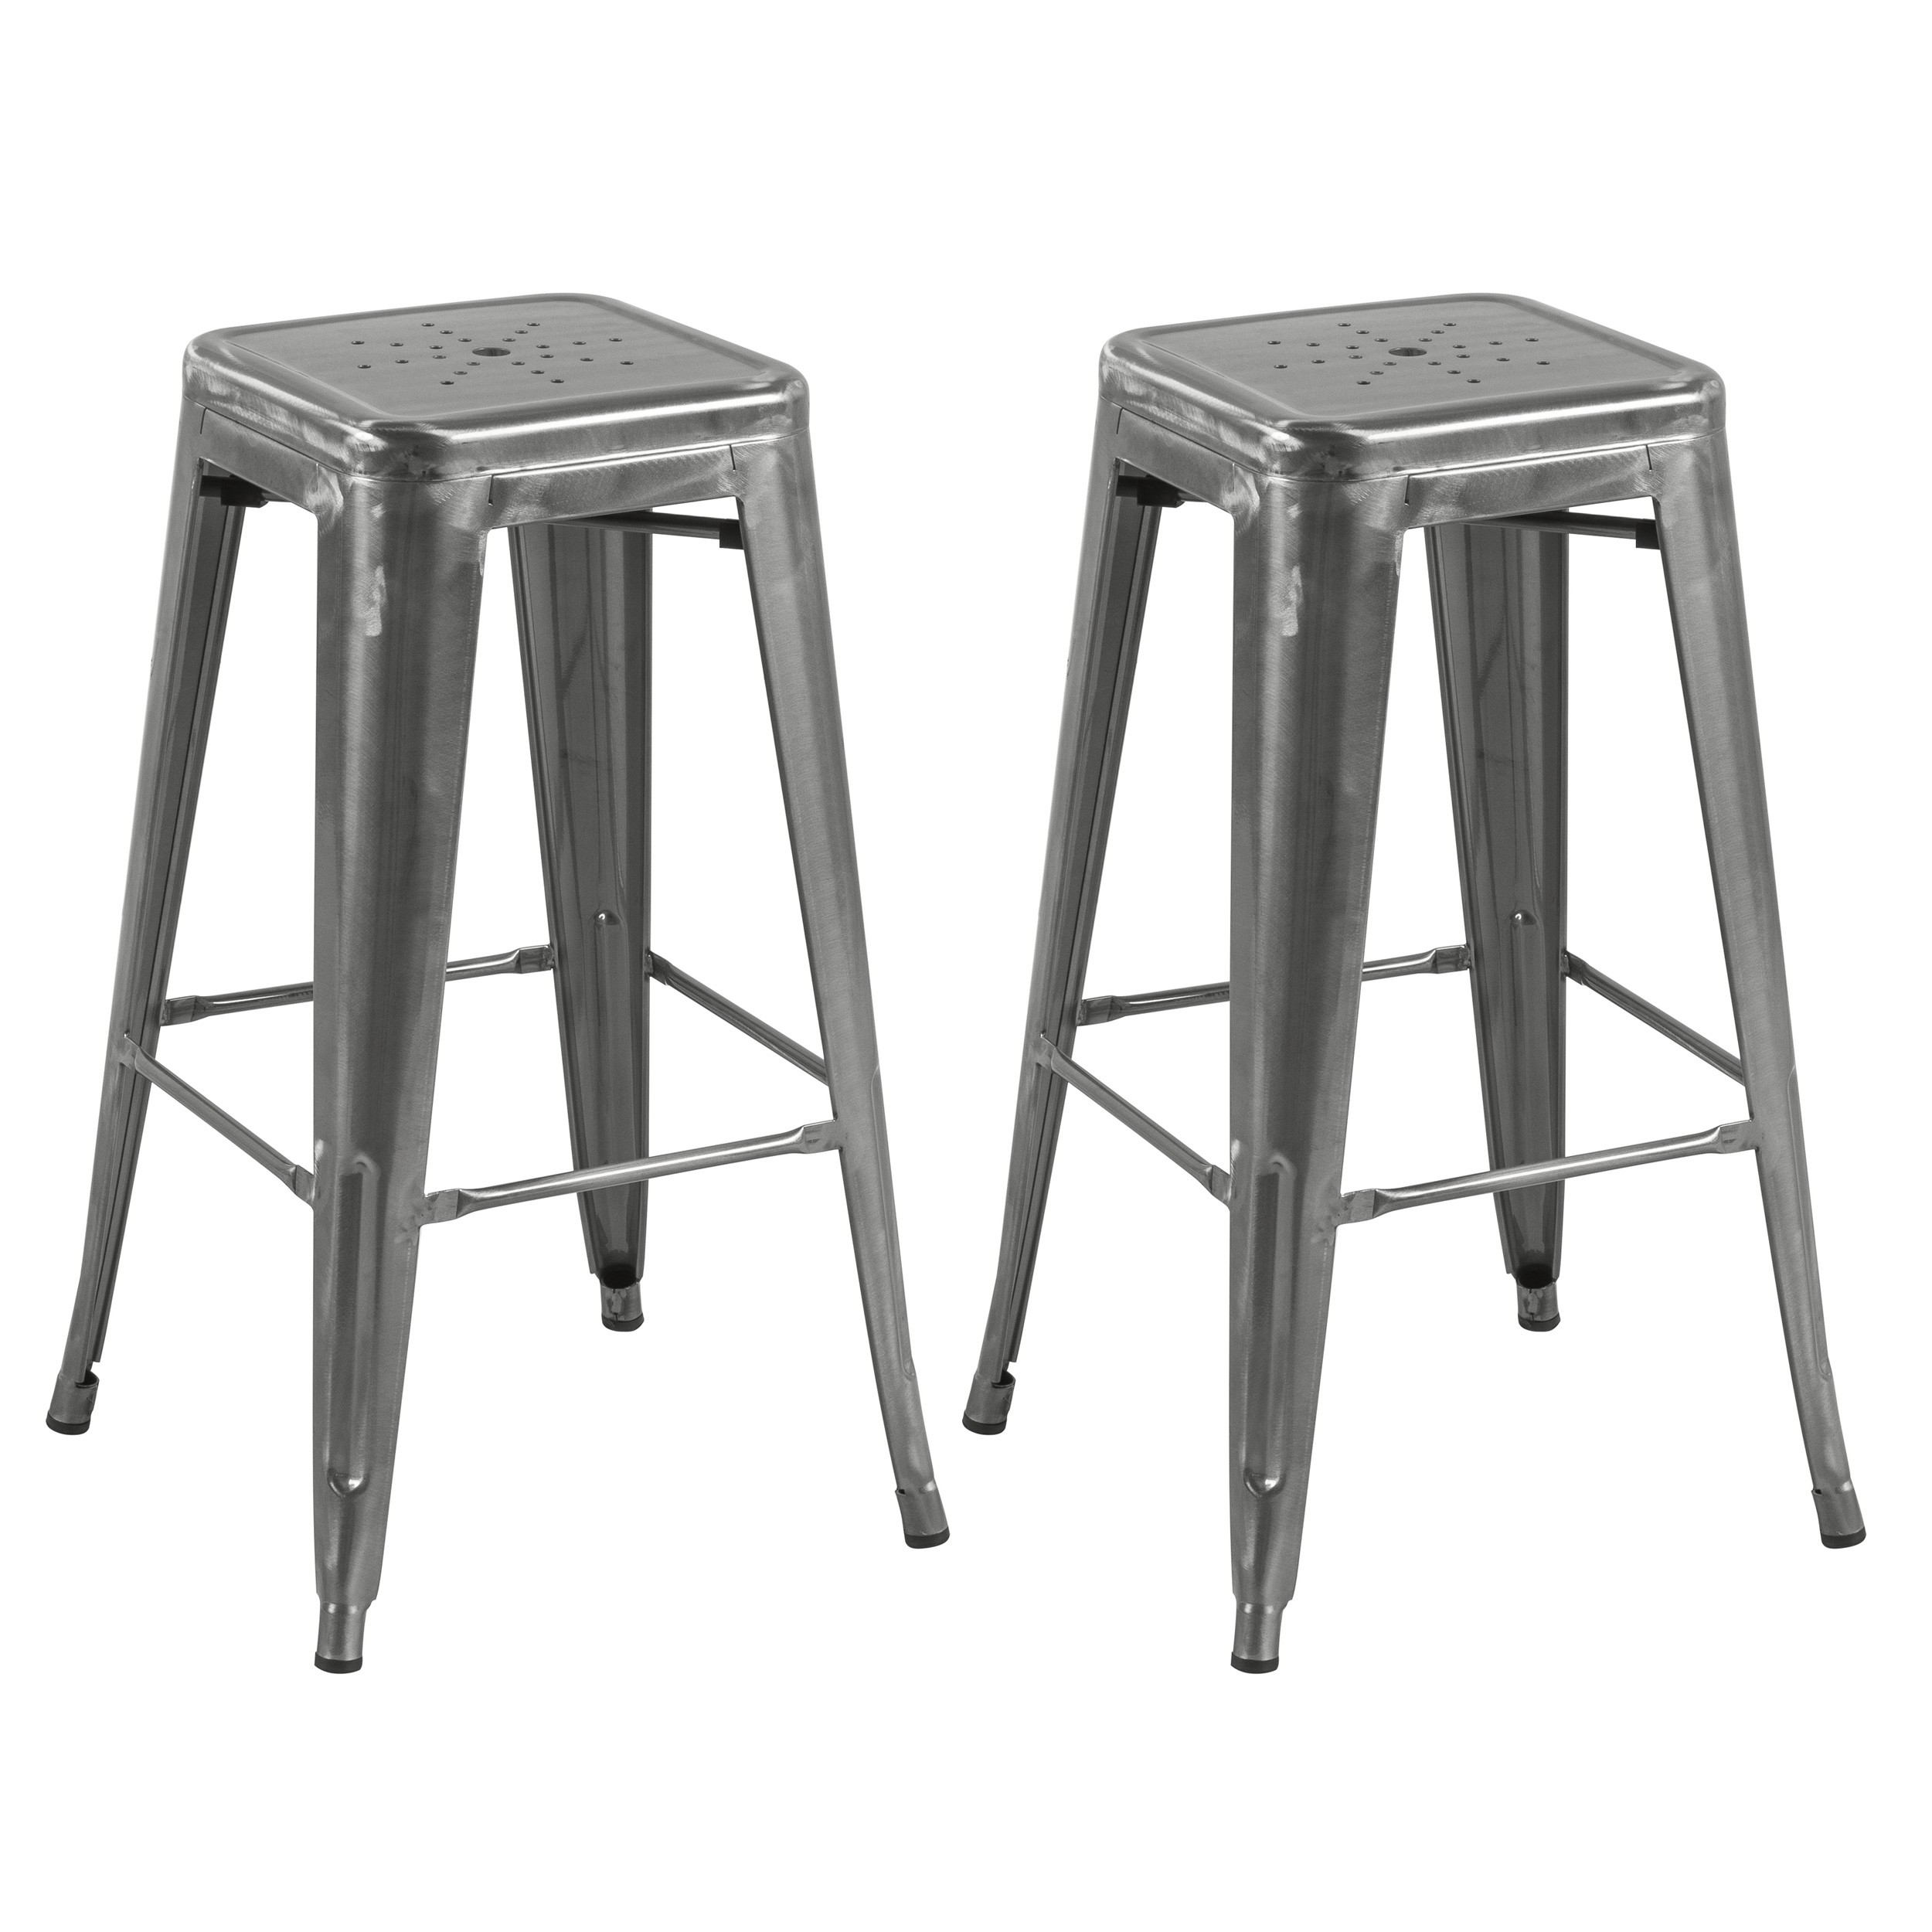 tabouret de bar indus chrome lot de 2 commandez les tabourets de bar indus chrome rdv d co. Black Bedroom Furniture Sets. Home Design Ideas